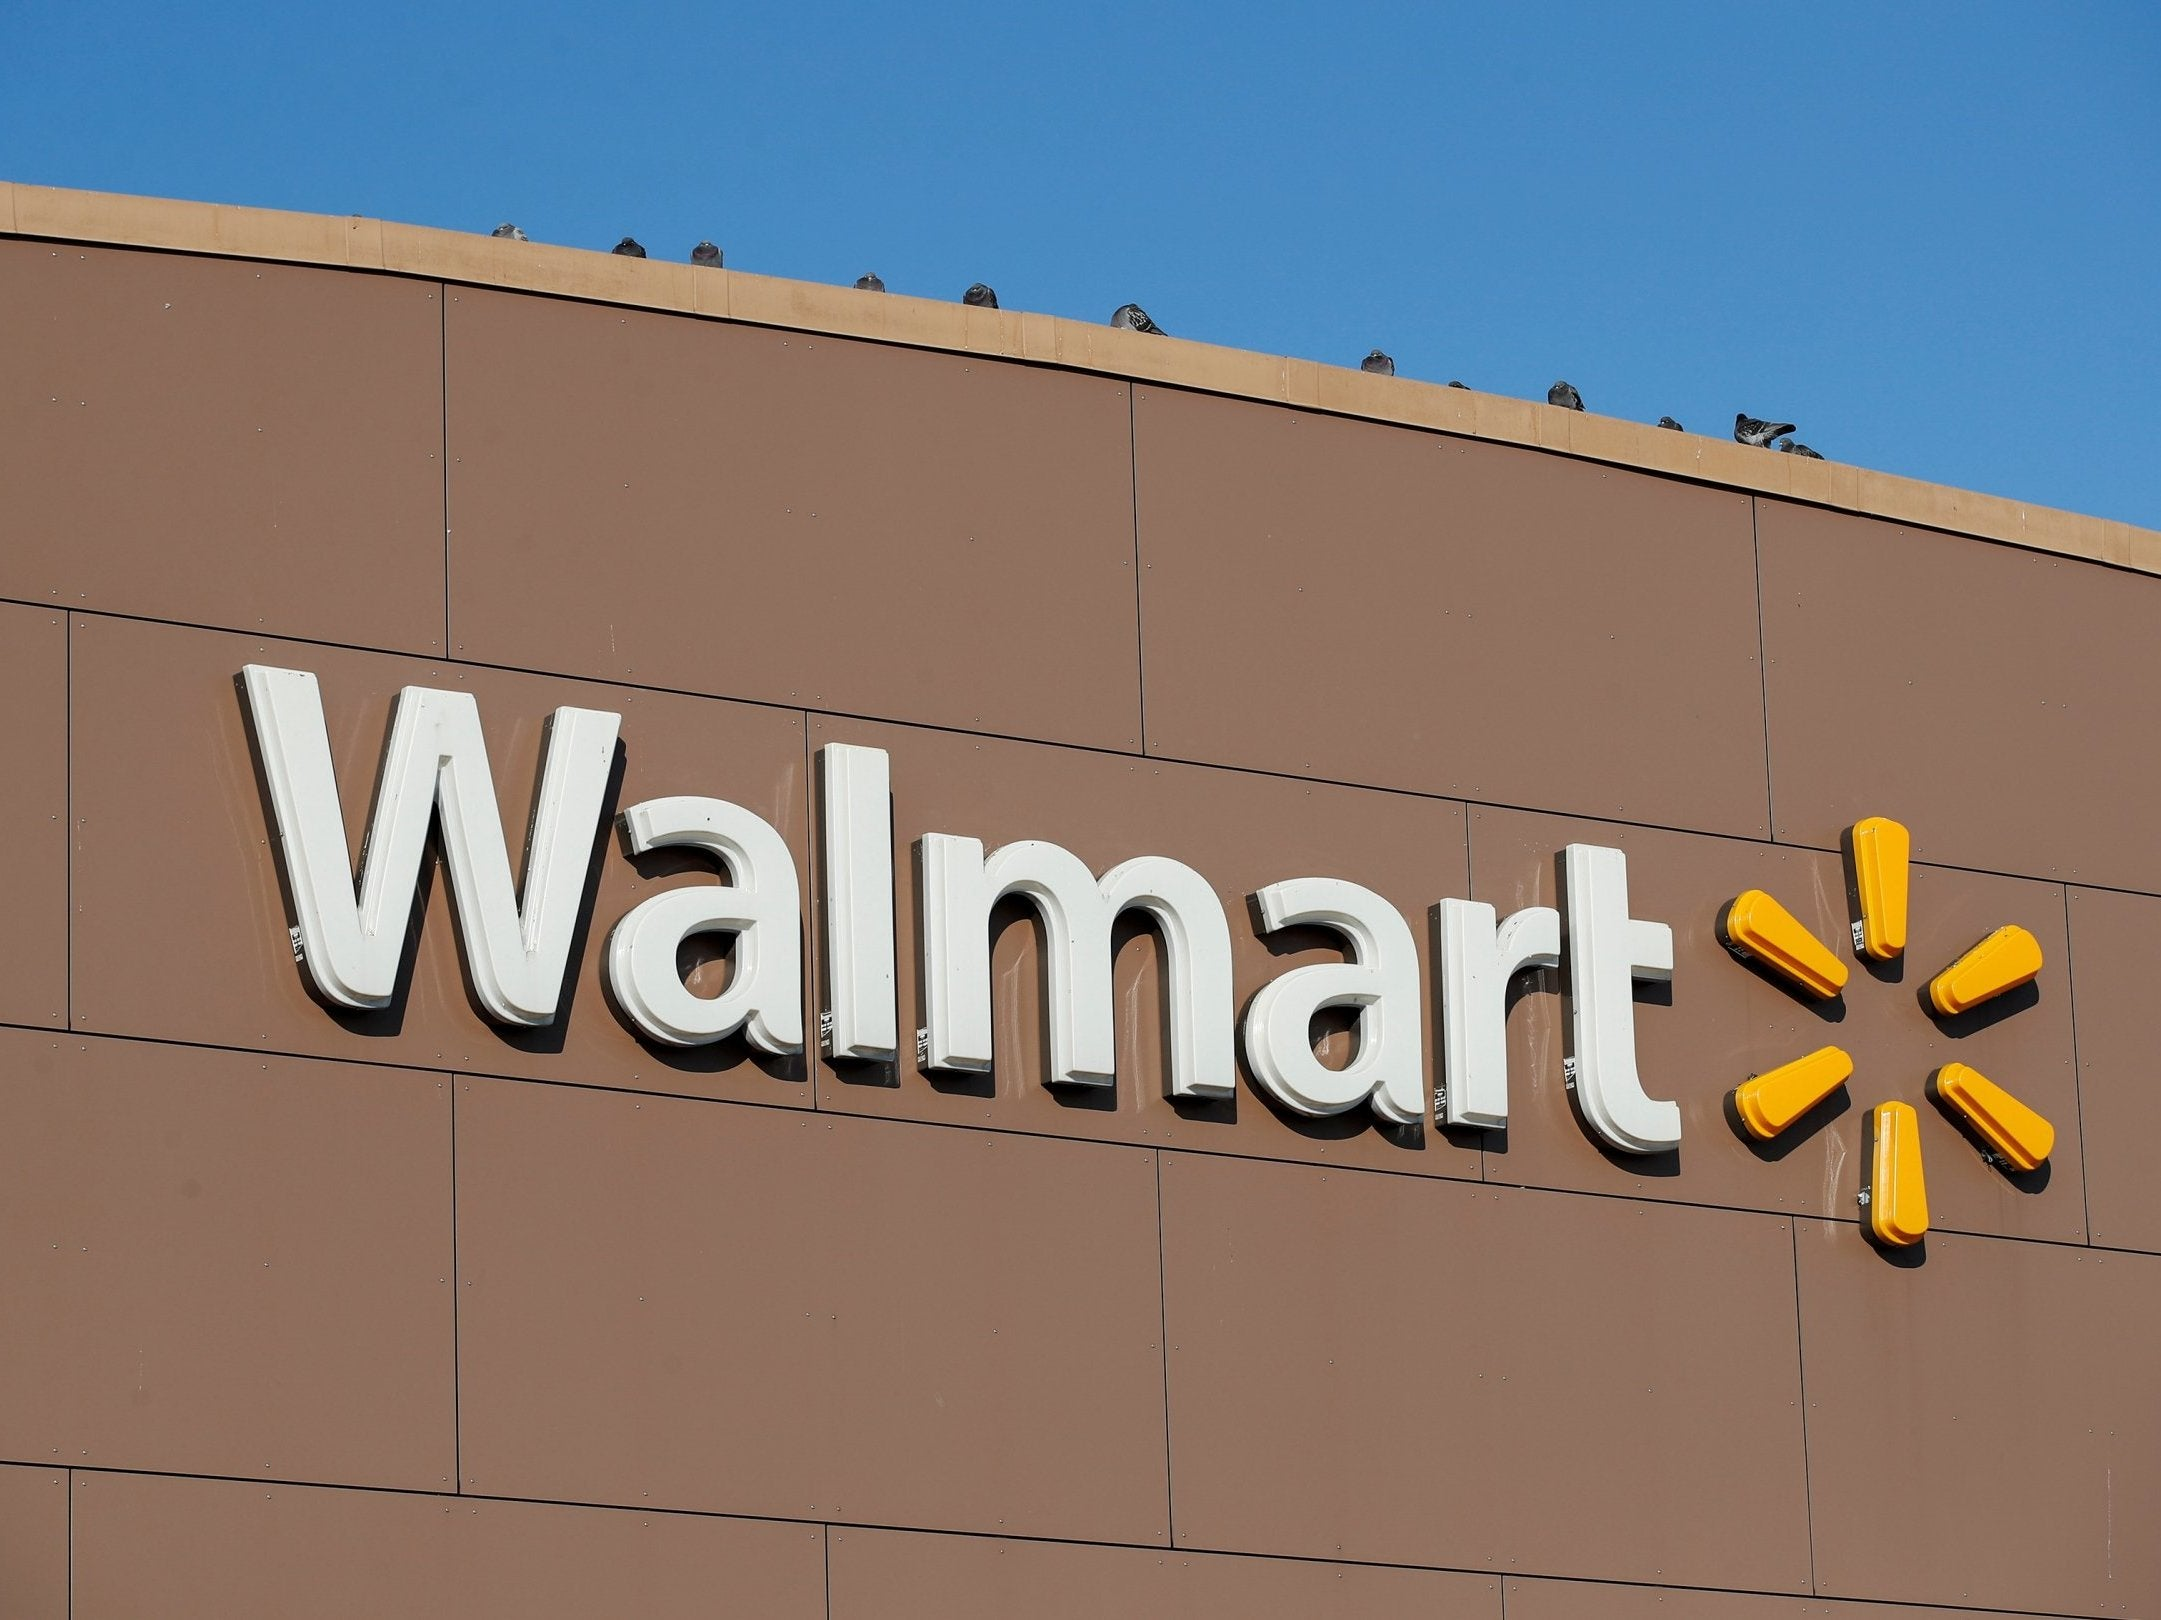 Walmart - latest news, breaking stories and comment - The Independent